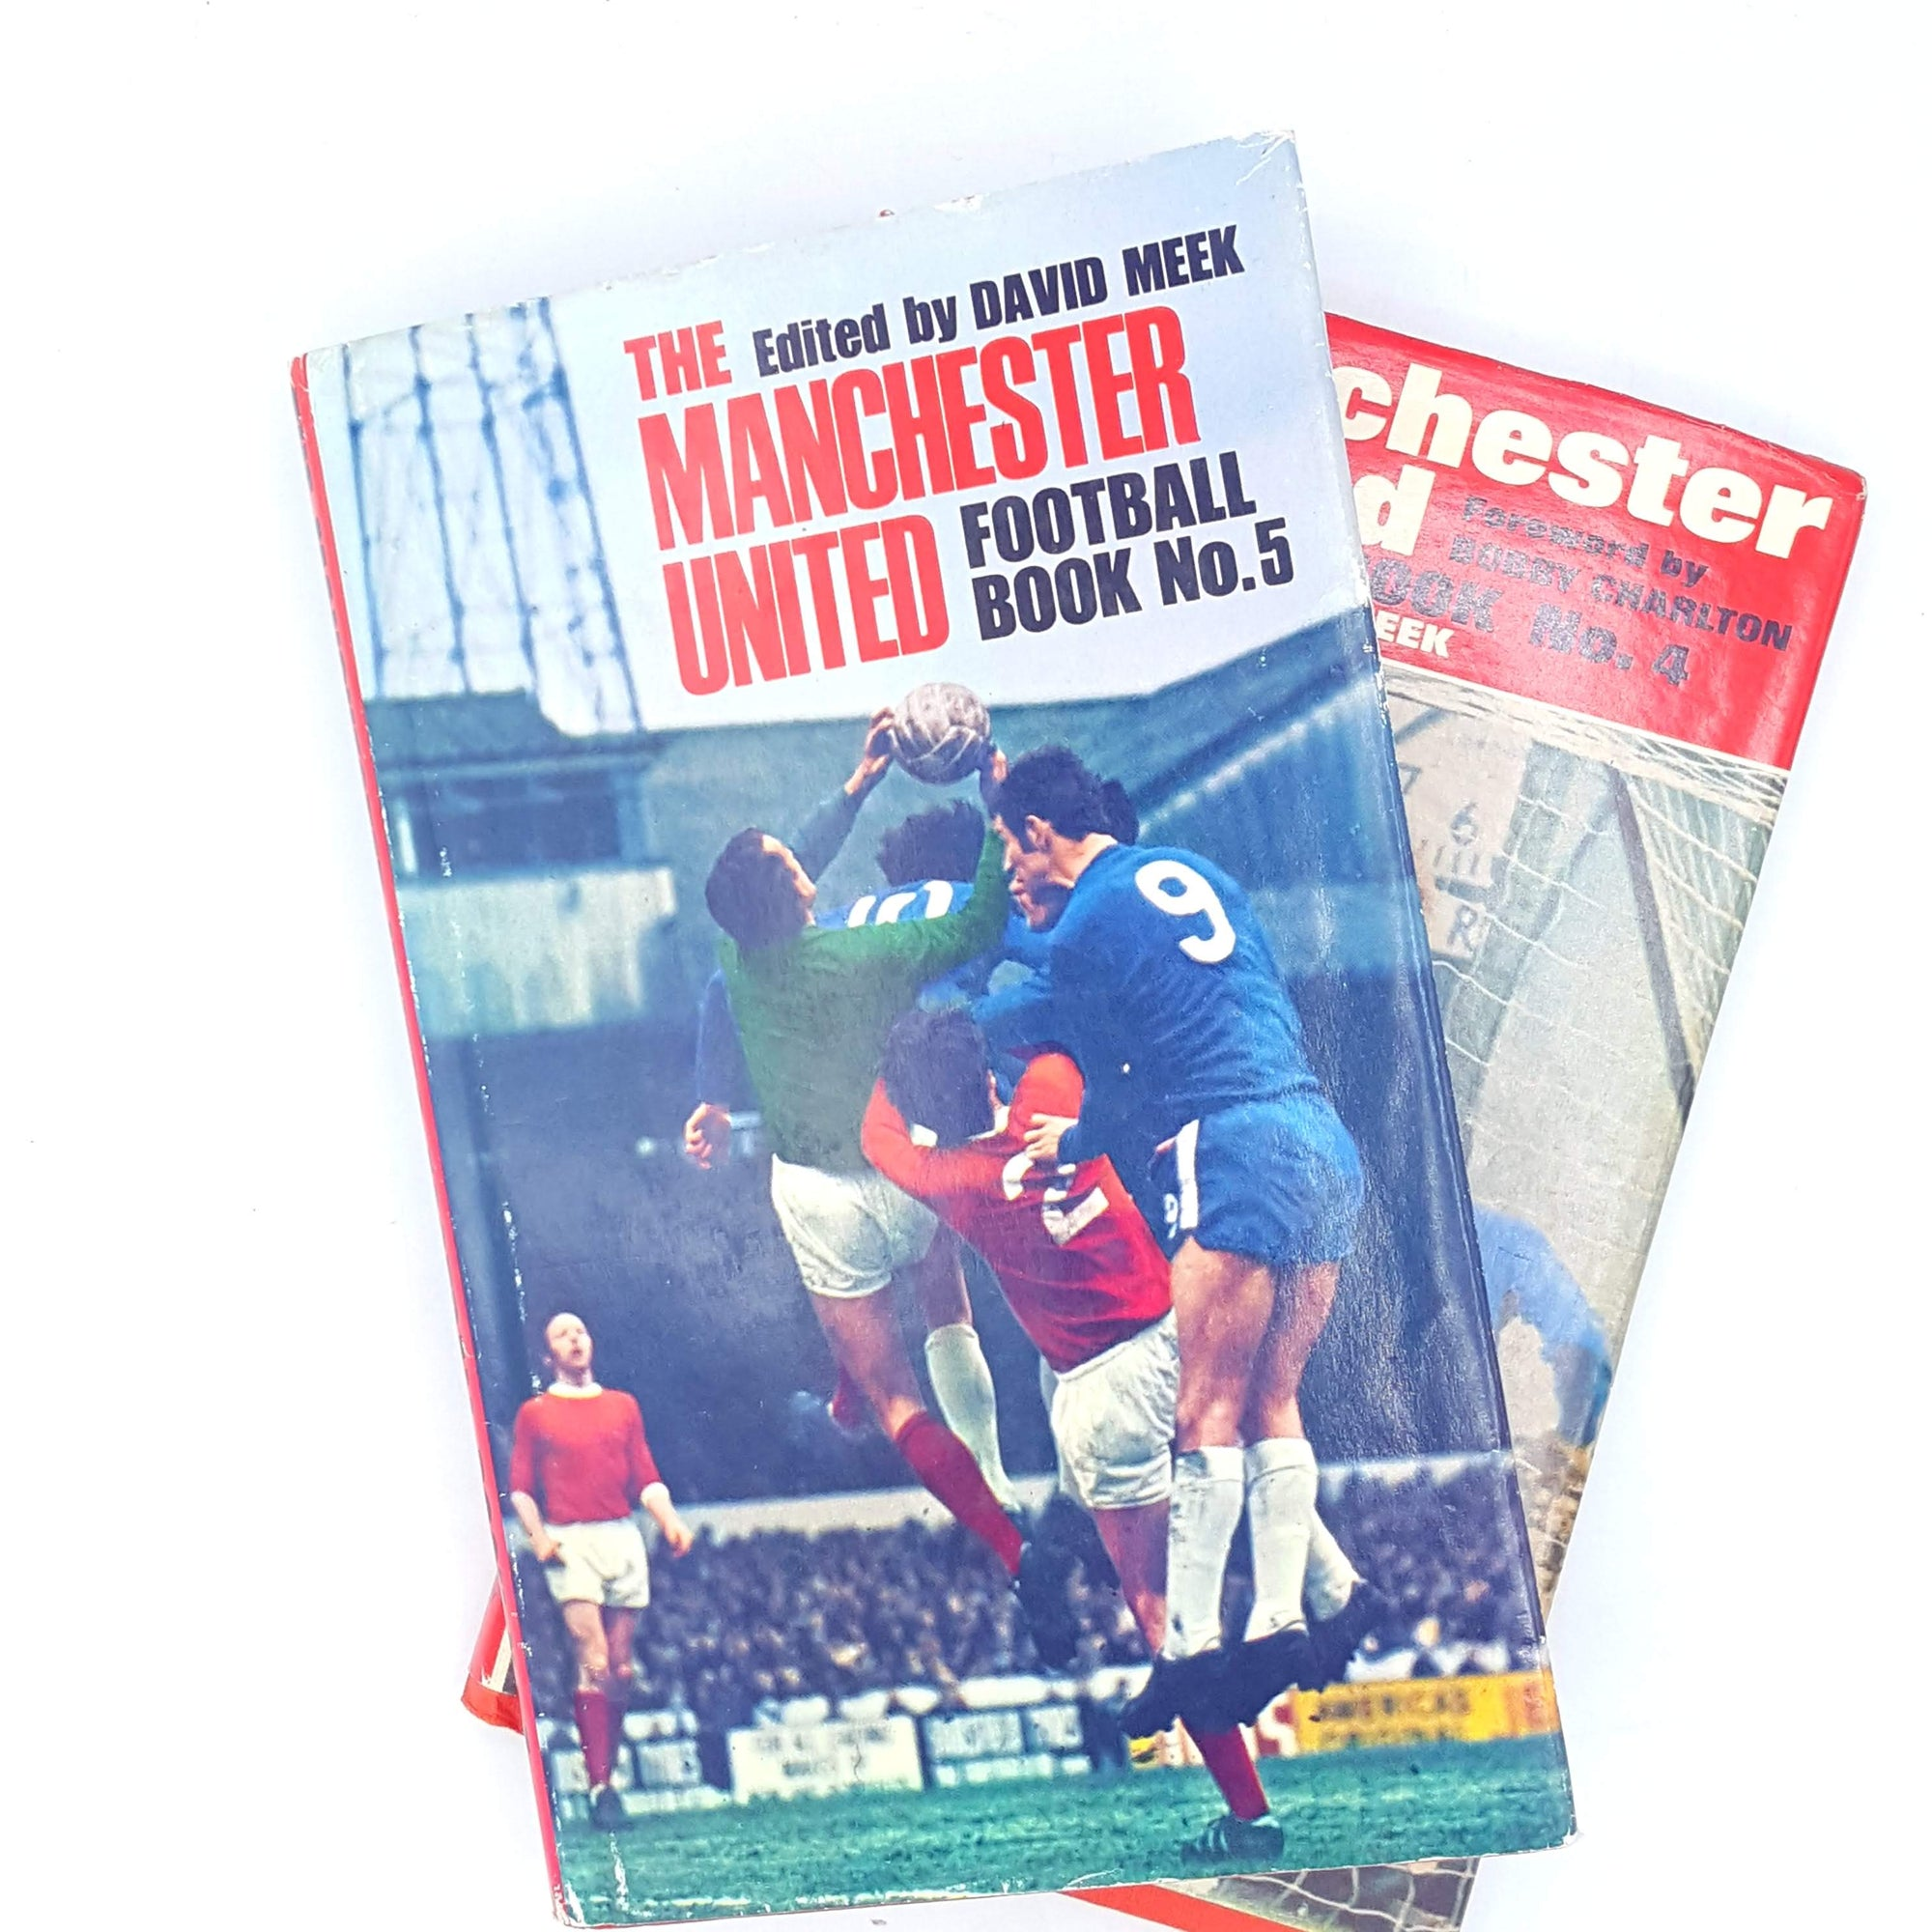 Vintage Manchester United Football Book Collection